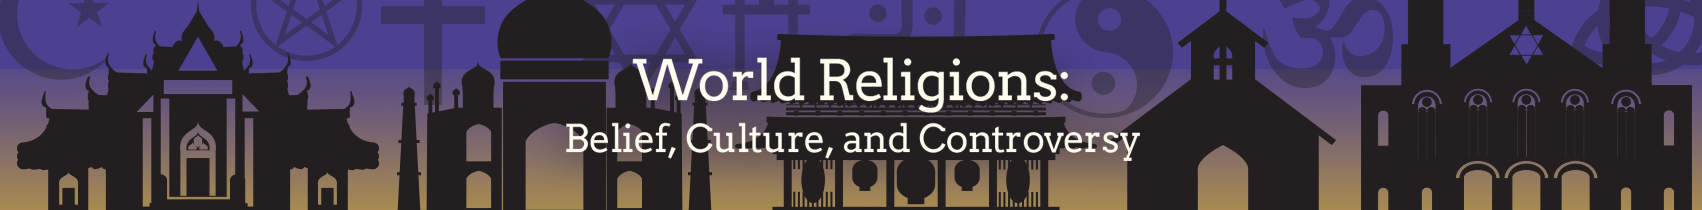 ABC-CLIO Solutions - World Religions: Belief, Culture, and Controversy